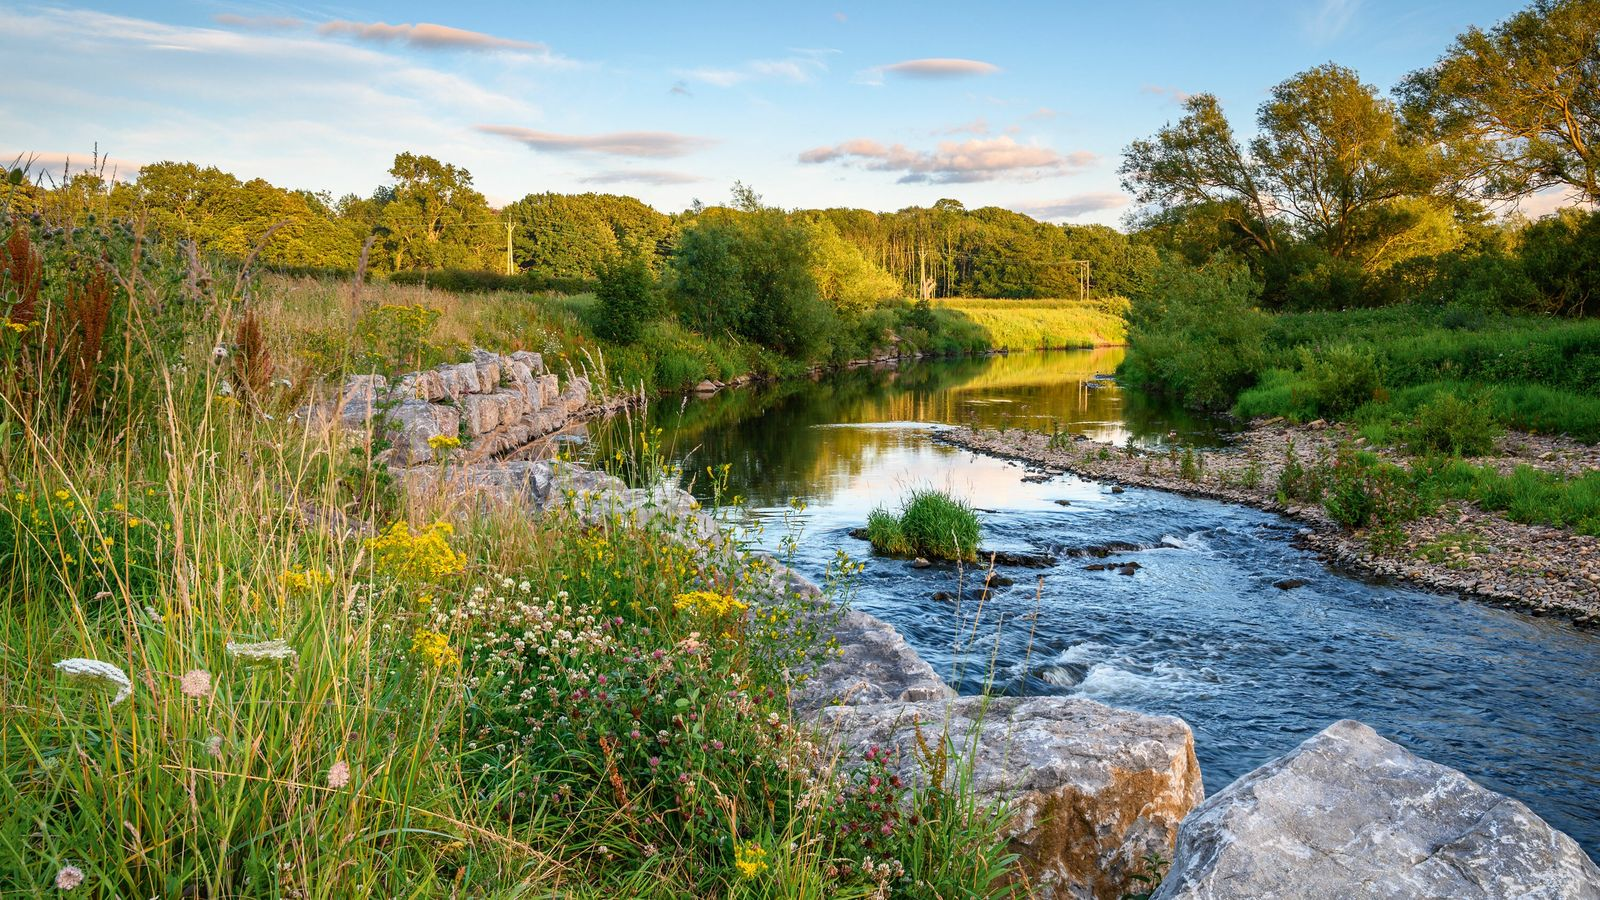 Wildflowers along the banks of the River Wear, near Bishop Auckland.